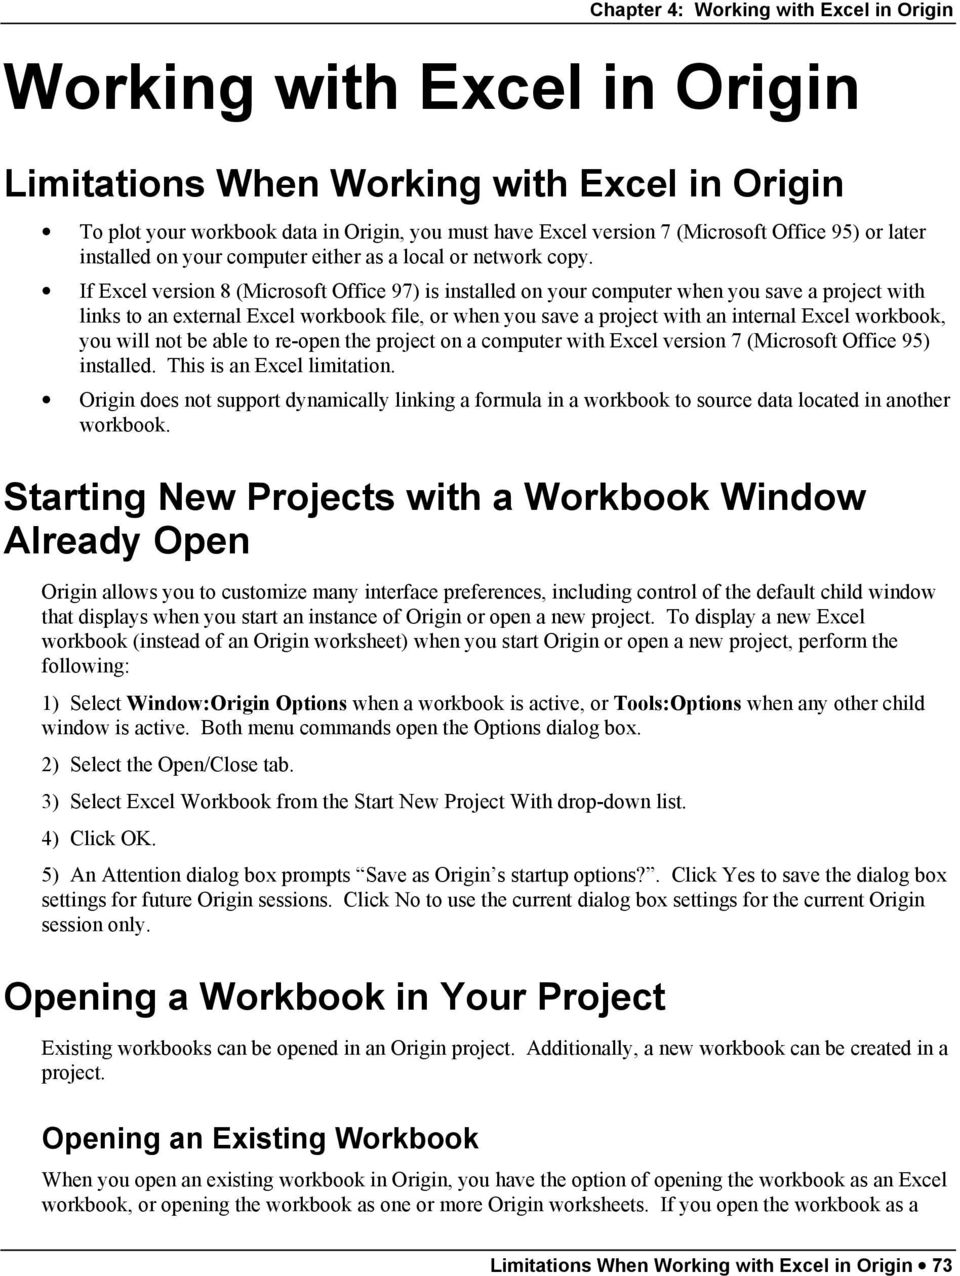 If Excel version 8 (Microsoft Office 97) is installed on your computer when you save a project with links to an external Excel workbook file, or when you save a project with an internal Excel